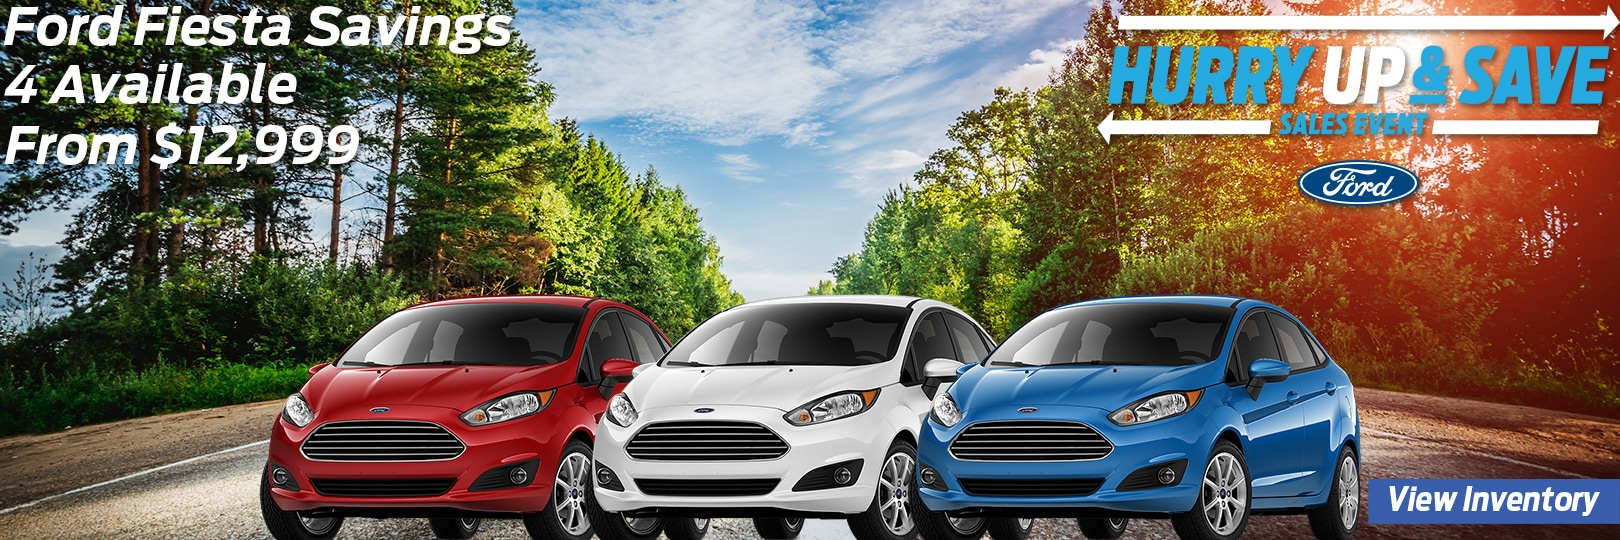 Ford Dealers In Ct >> Crest Ford Is The Best Ford Dealer In Ct New London County Come